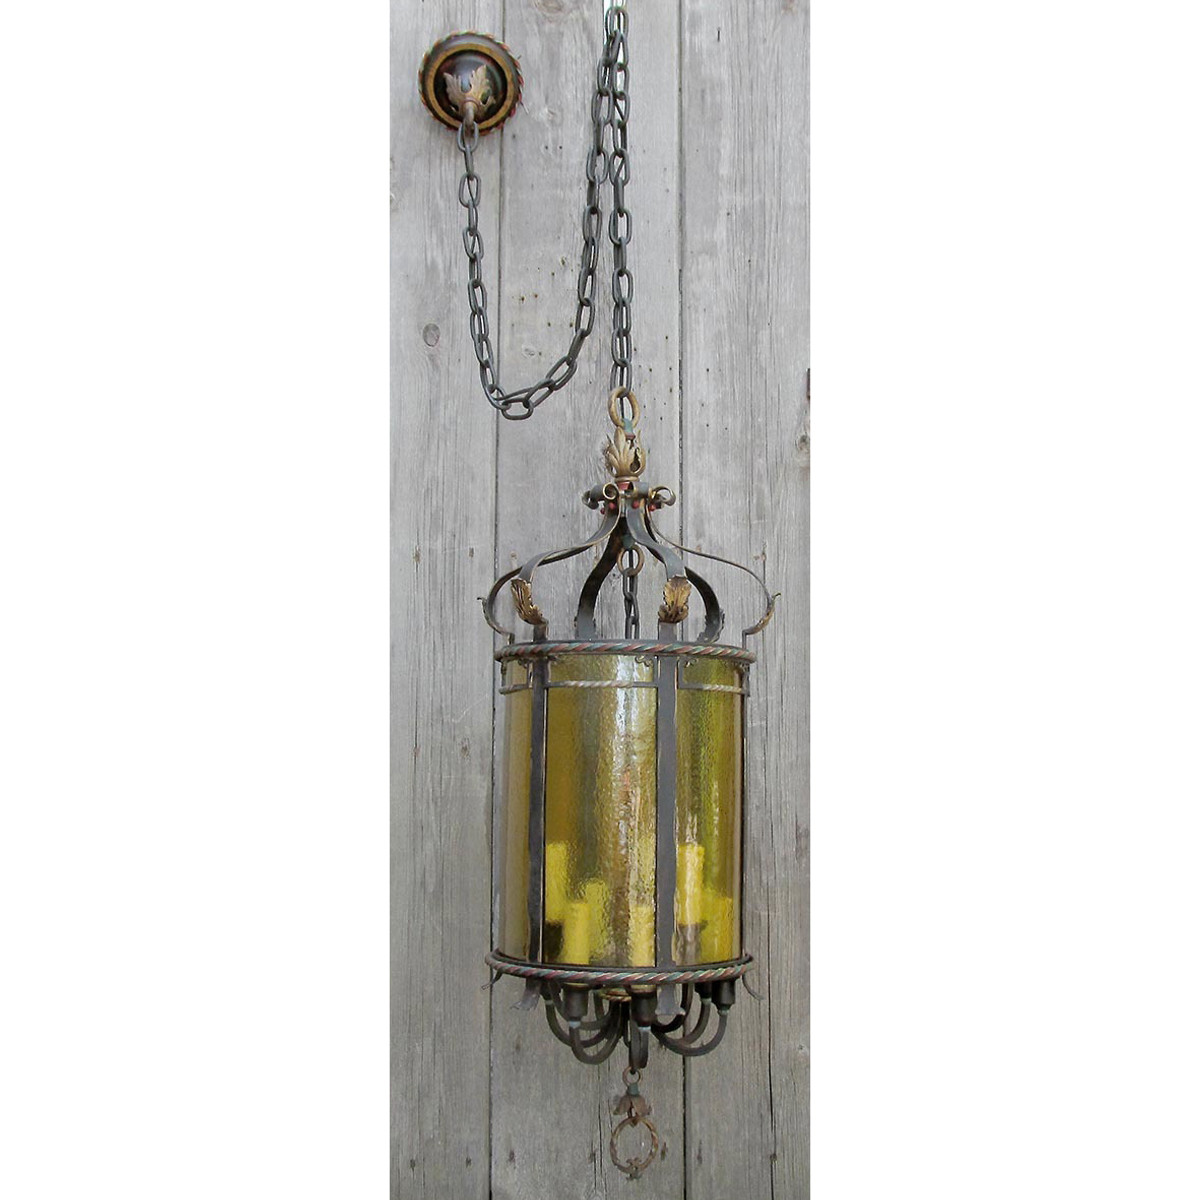 L16142 - Antique Mediterranean Revival Brass and Wrought Iron Hall Lantern